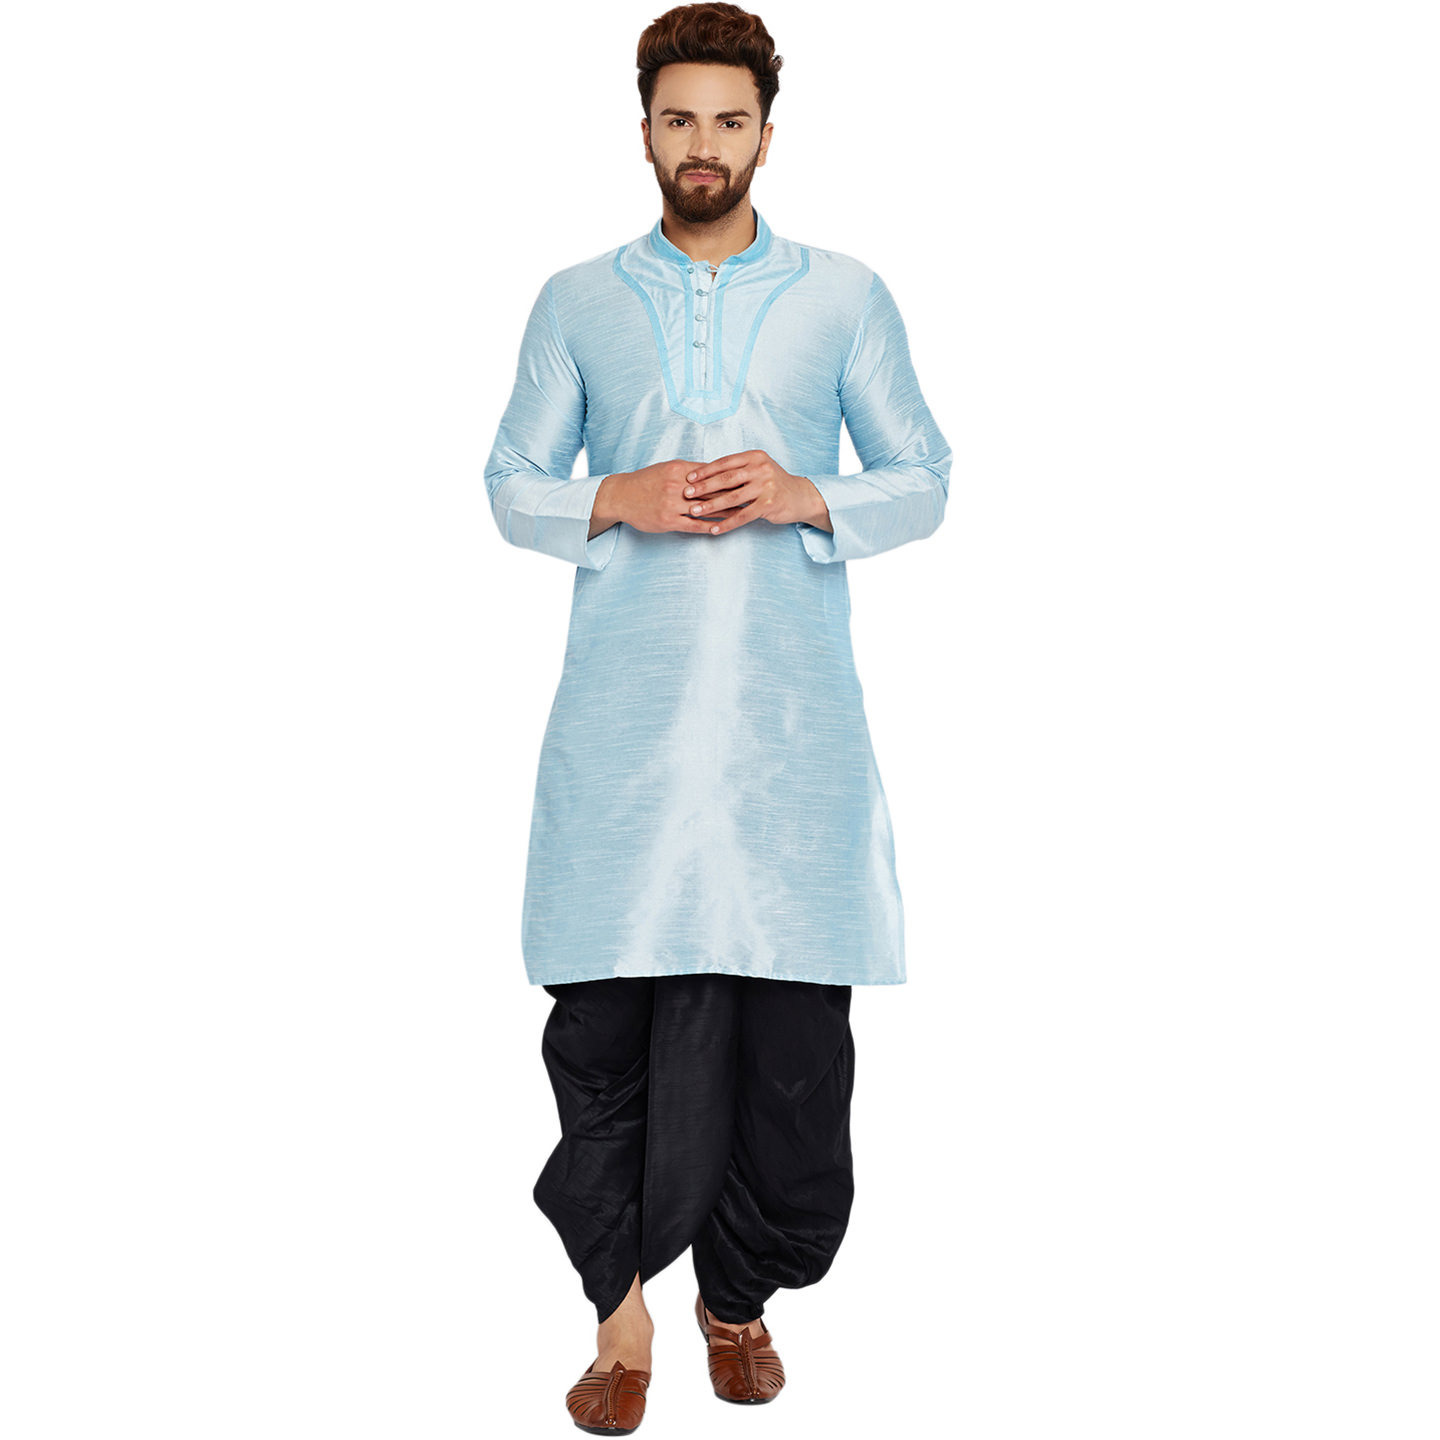 Sojanya (Since 1958)B Men's Traditional Ethnic Wear Dupion Silk Aqua Blue and BlackThread embroidery Dhoti Kurta Set Regular Fit